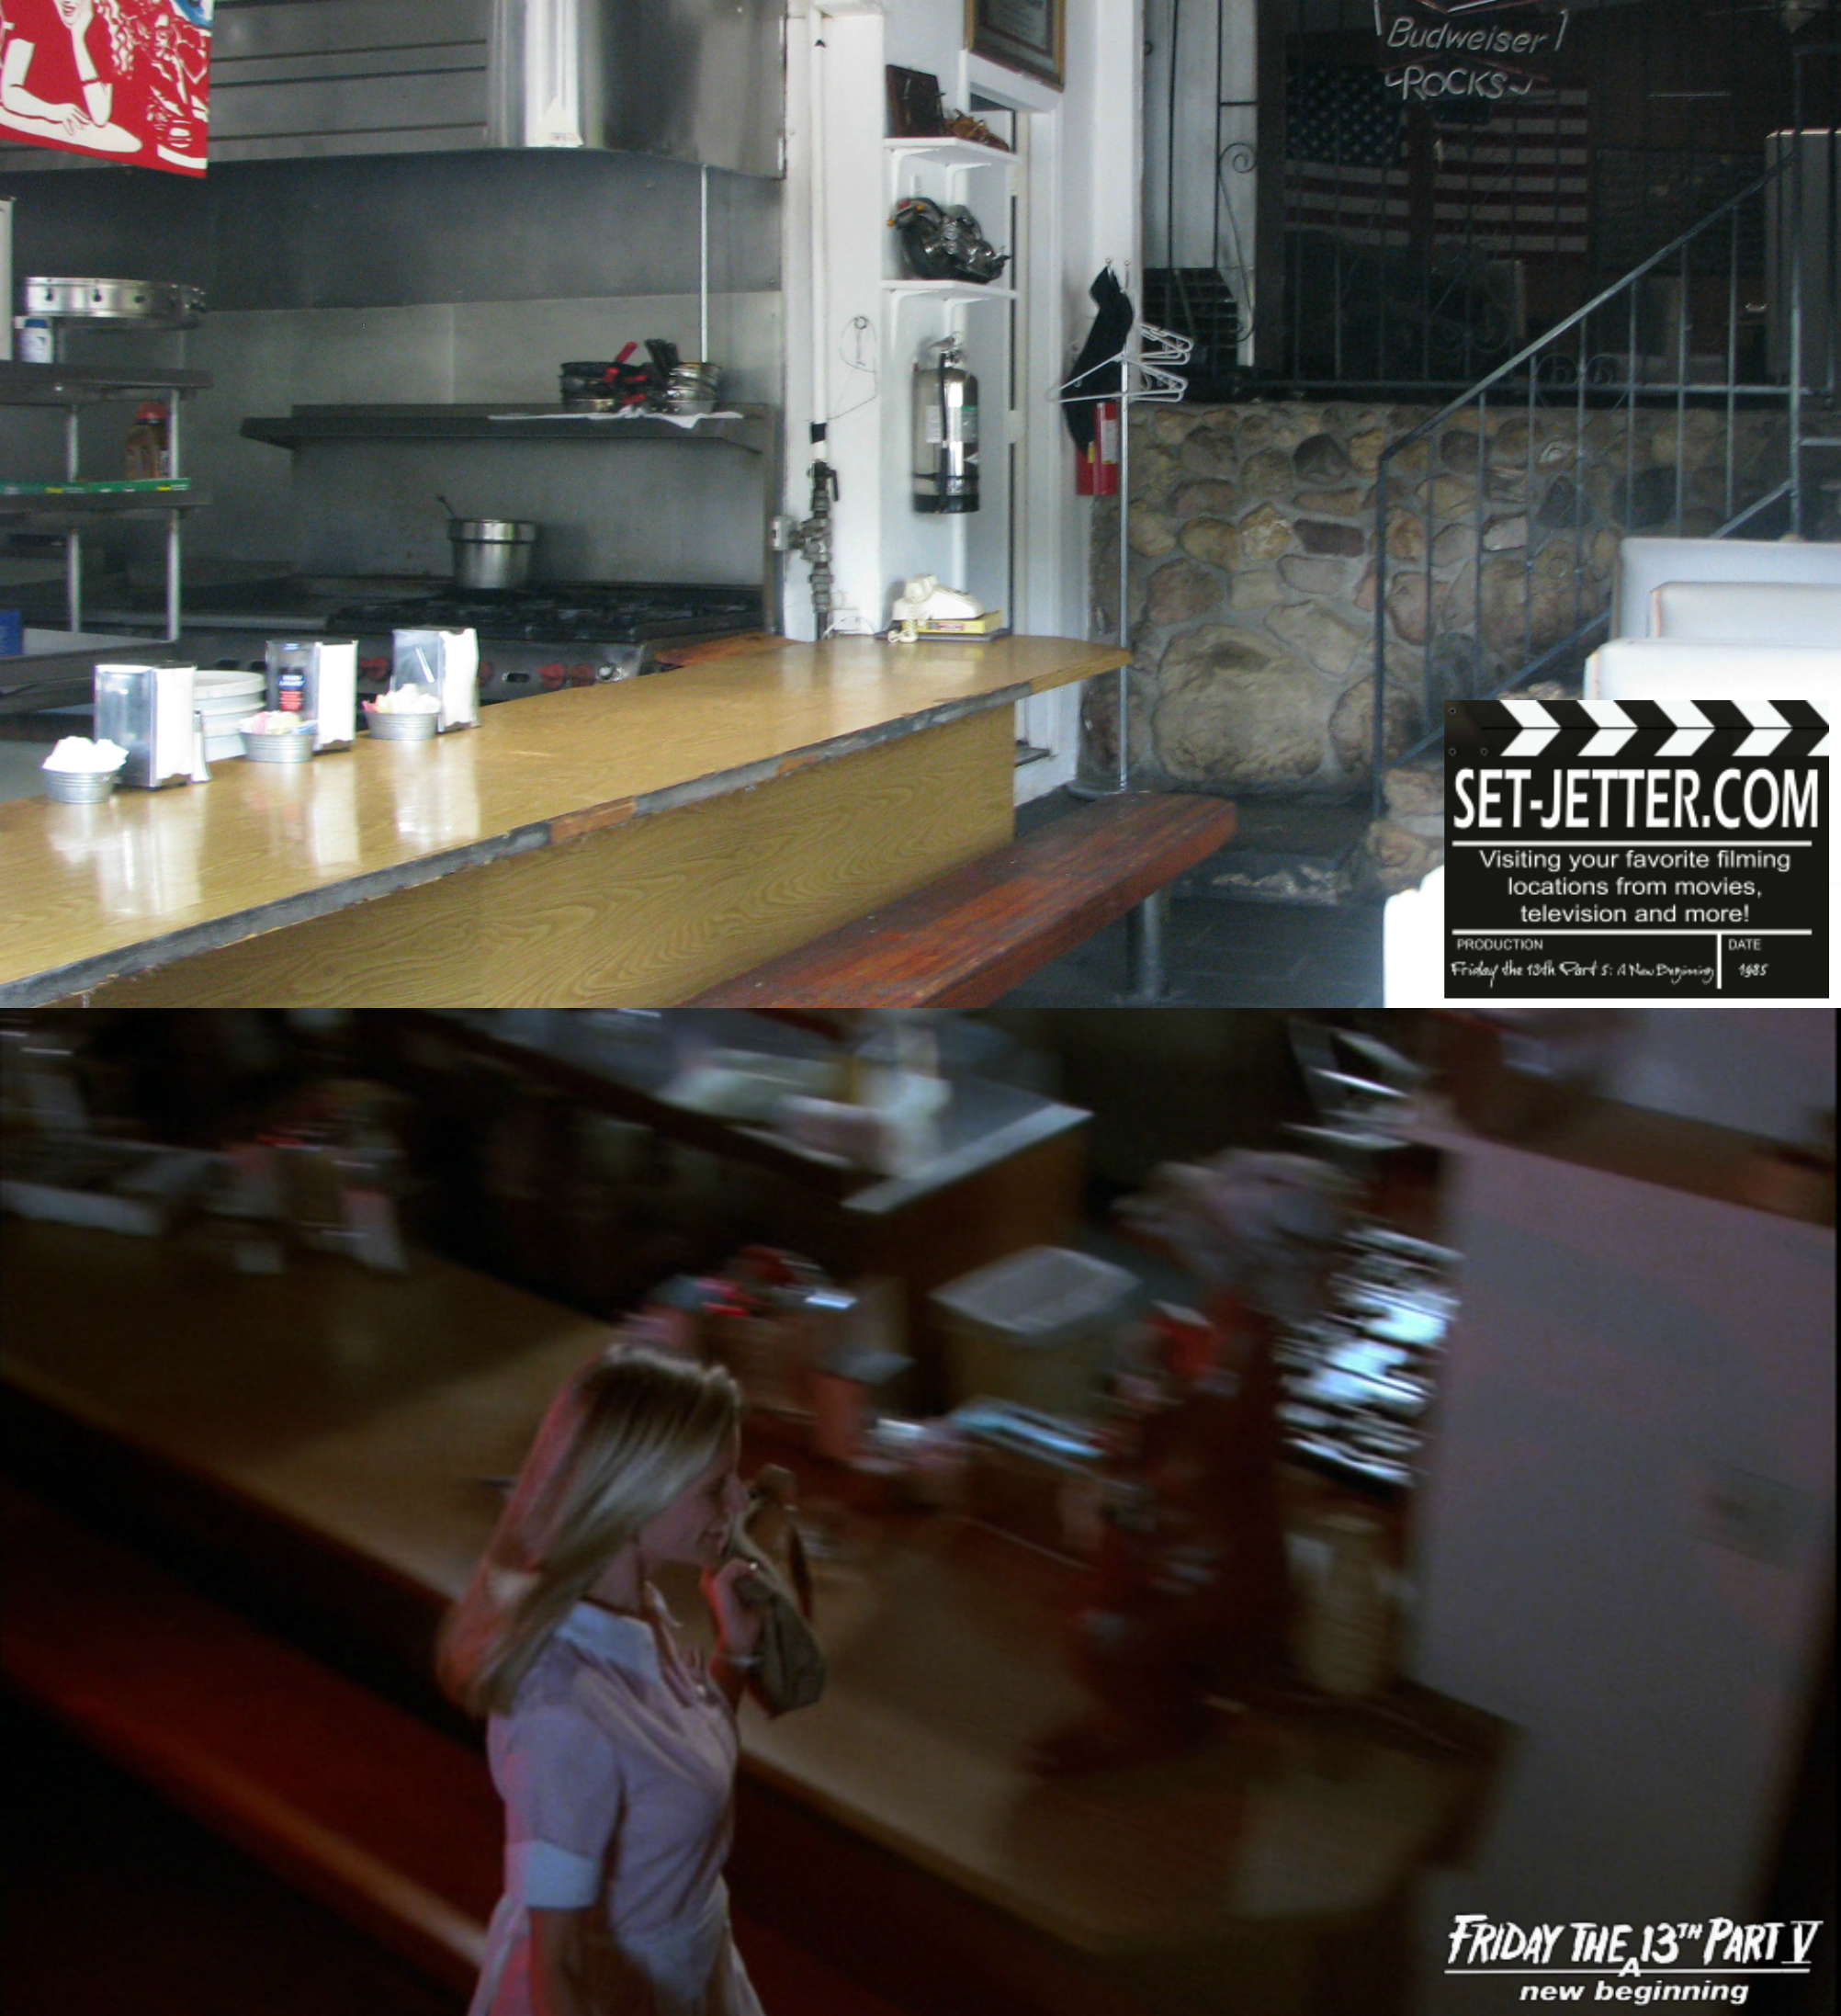 Friday the 13th Part V comparison 21.jpg